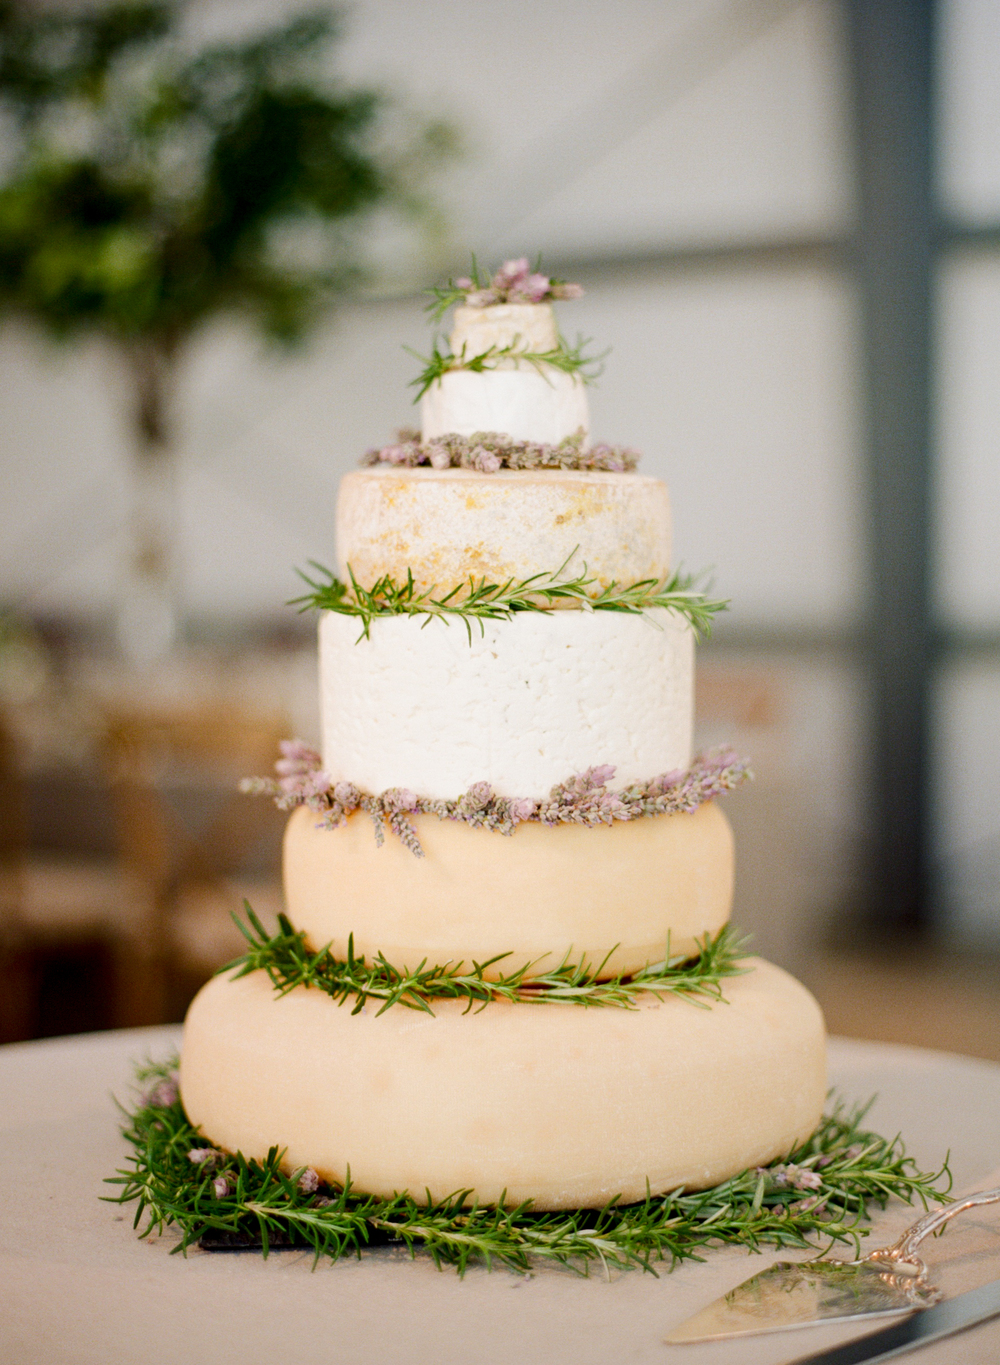 SylvieGil-Durham-Ranch-Organic-Ethereal-Rustic-Olive-Cheese-Cake-Wedding